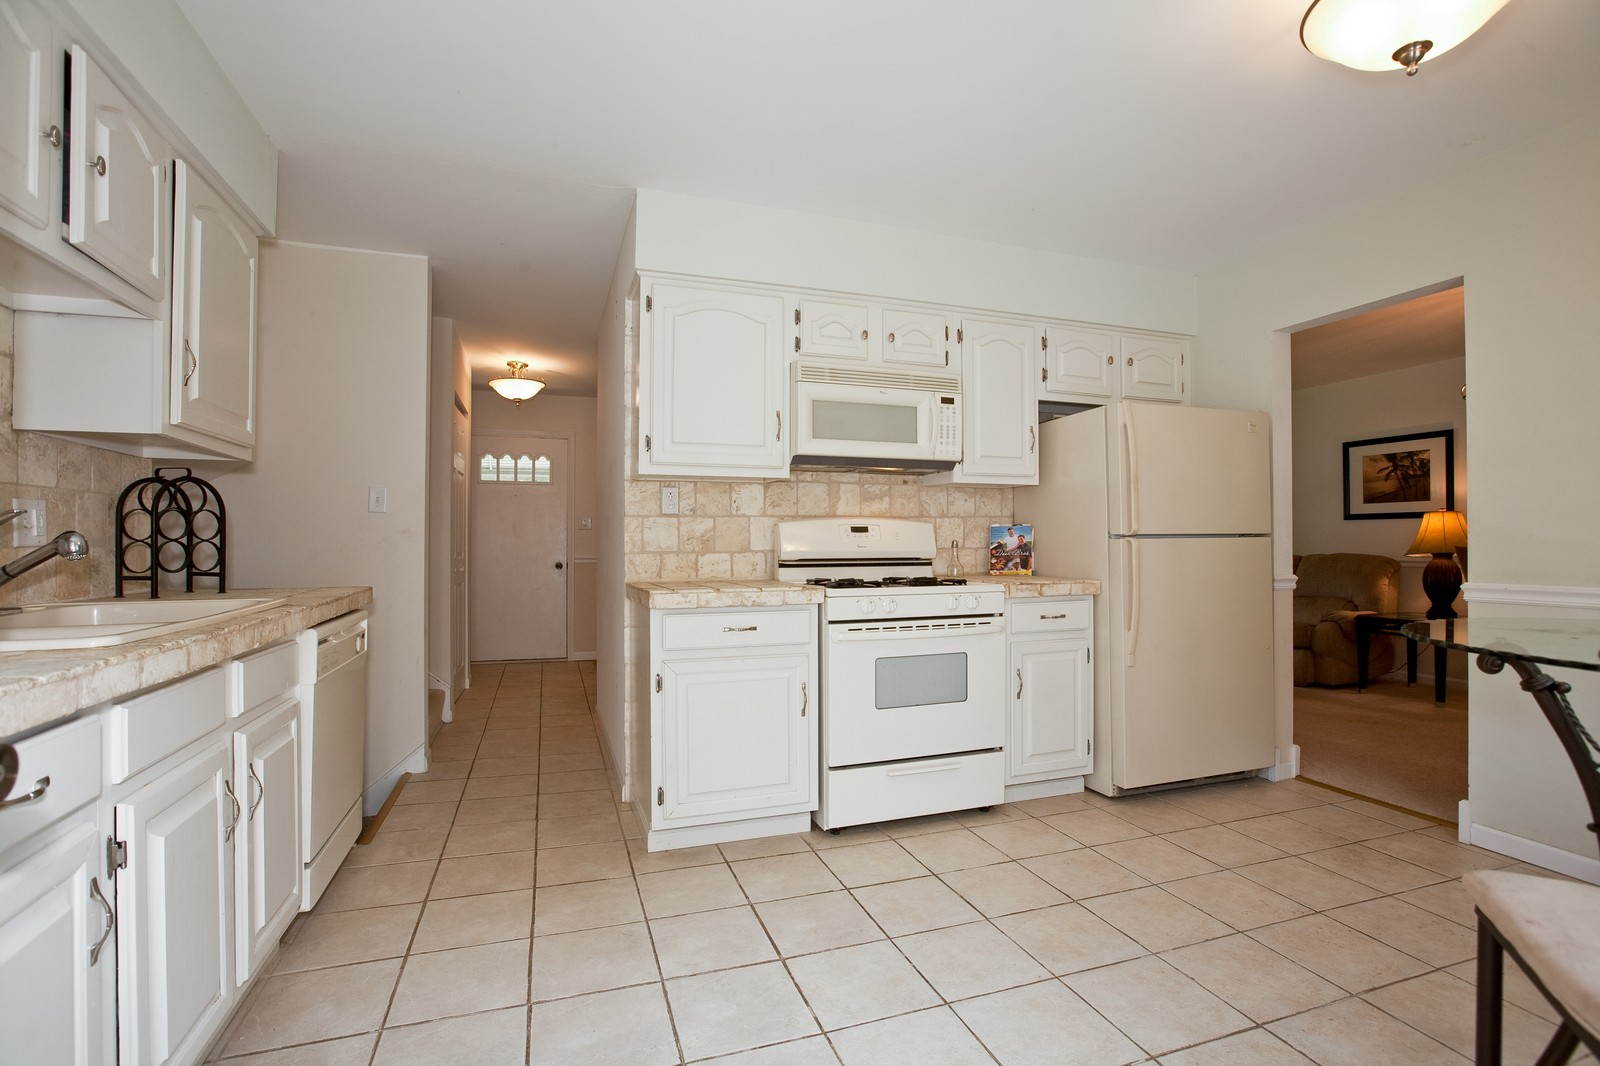 Real Estate Photography - 4050 West End, Downers Grove, IL, 60515 - Kitchen